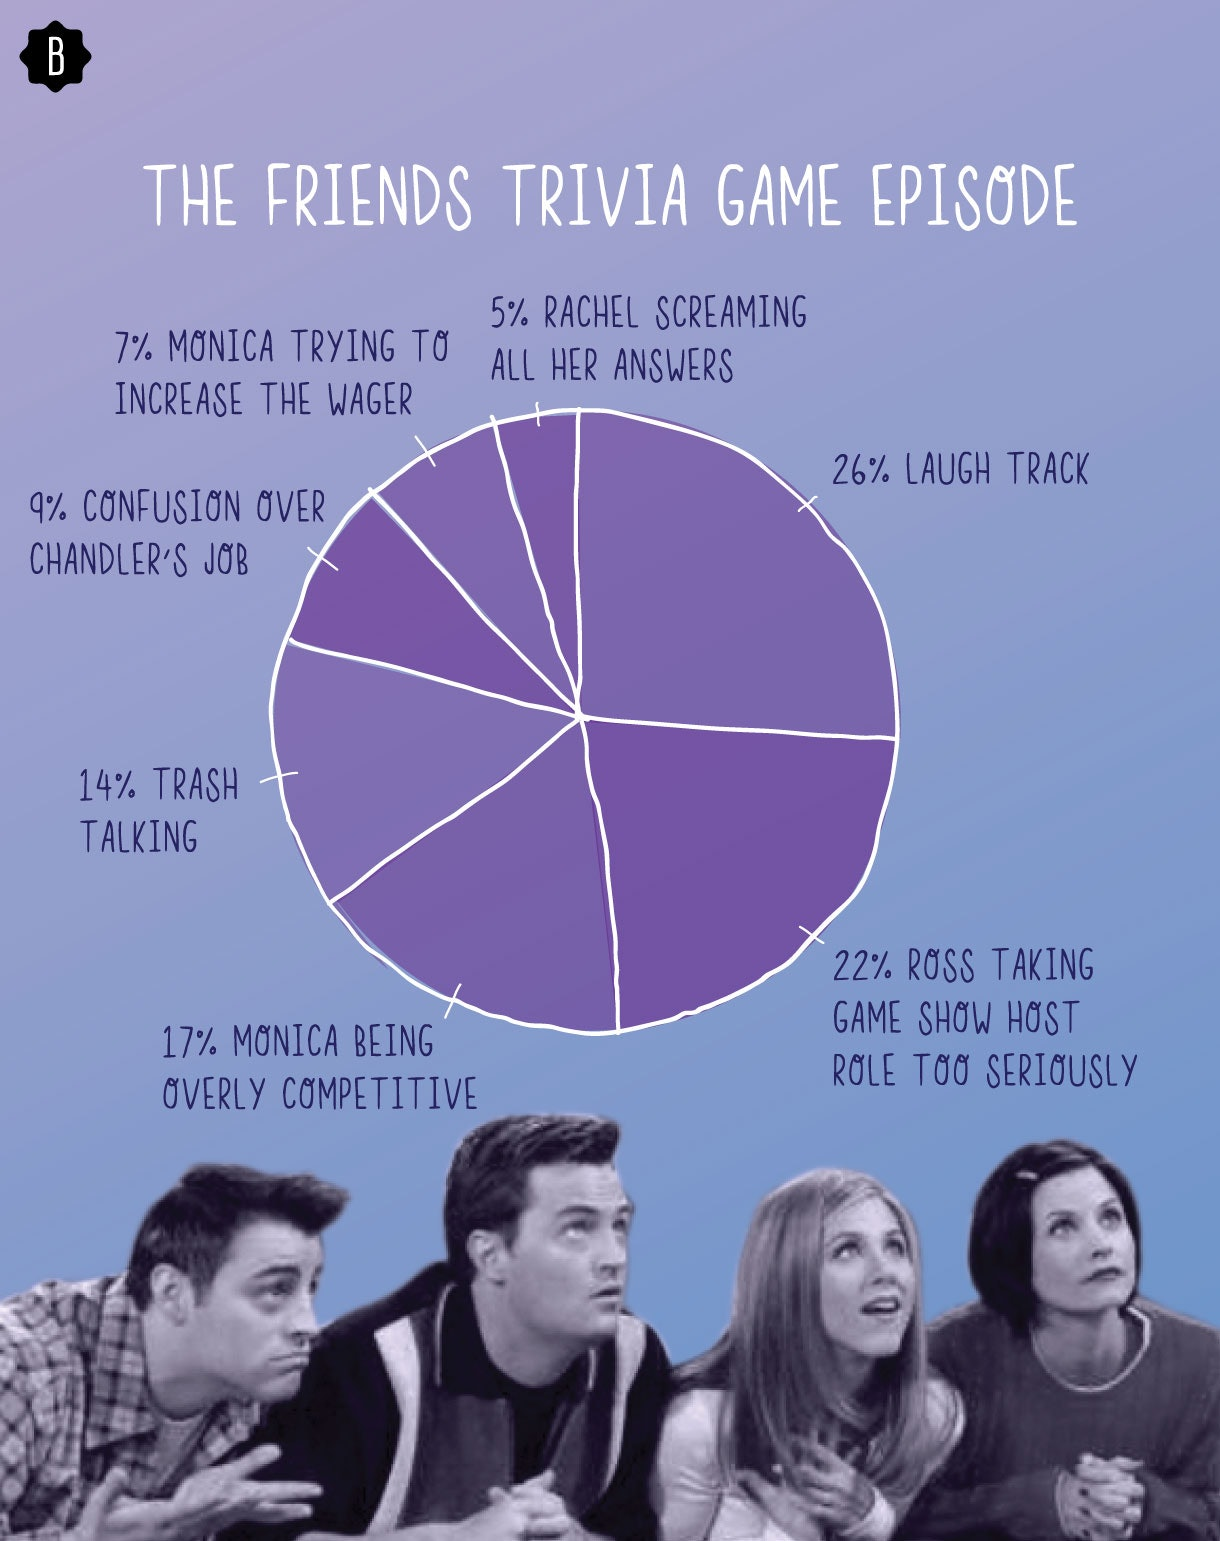 The 'Friends' Trivia Game Broken Down In A Pie Chart That Monica